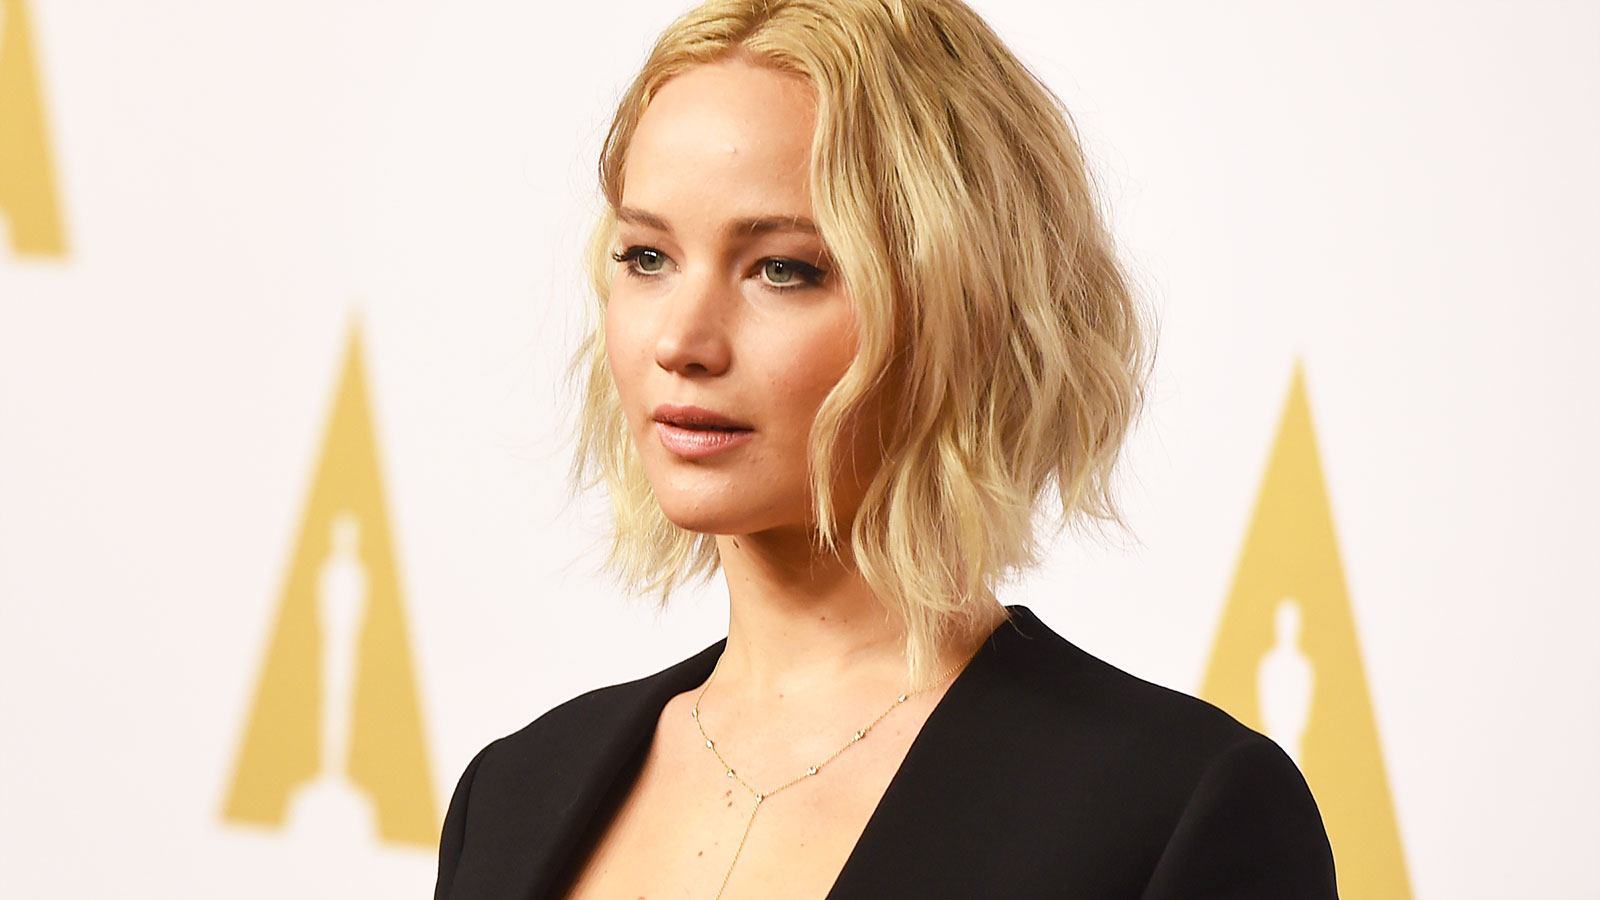 Jennifer Lawrence's family farm loses barn in fire